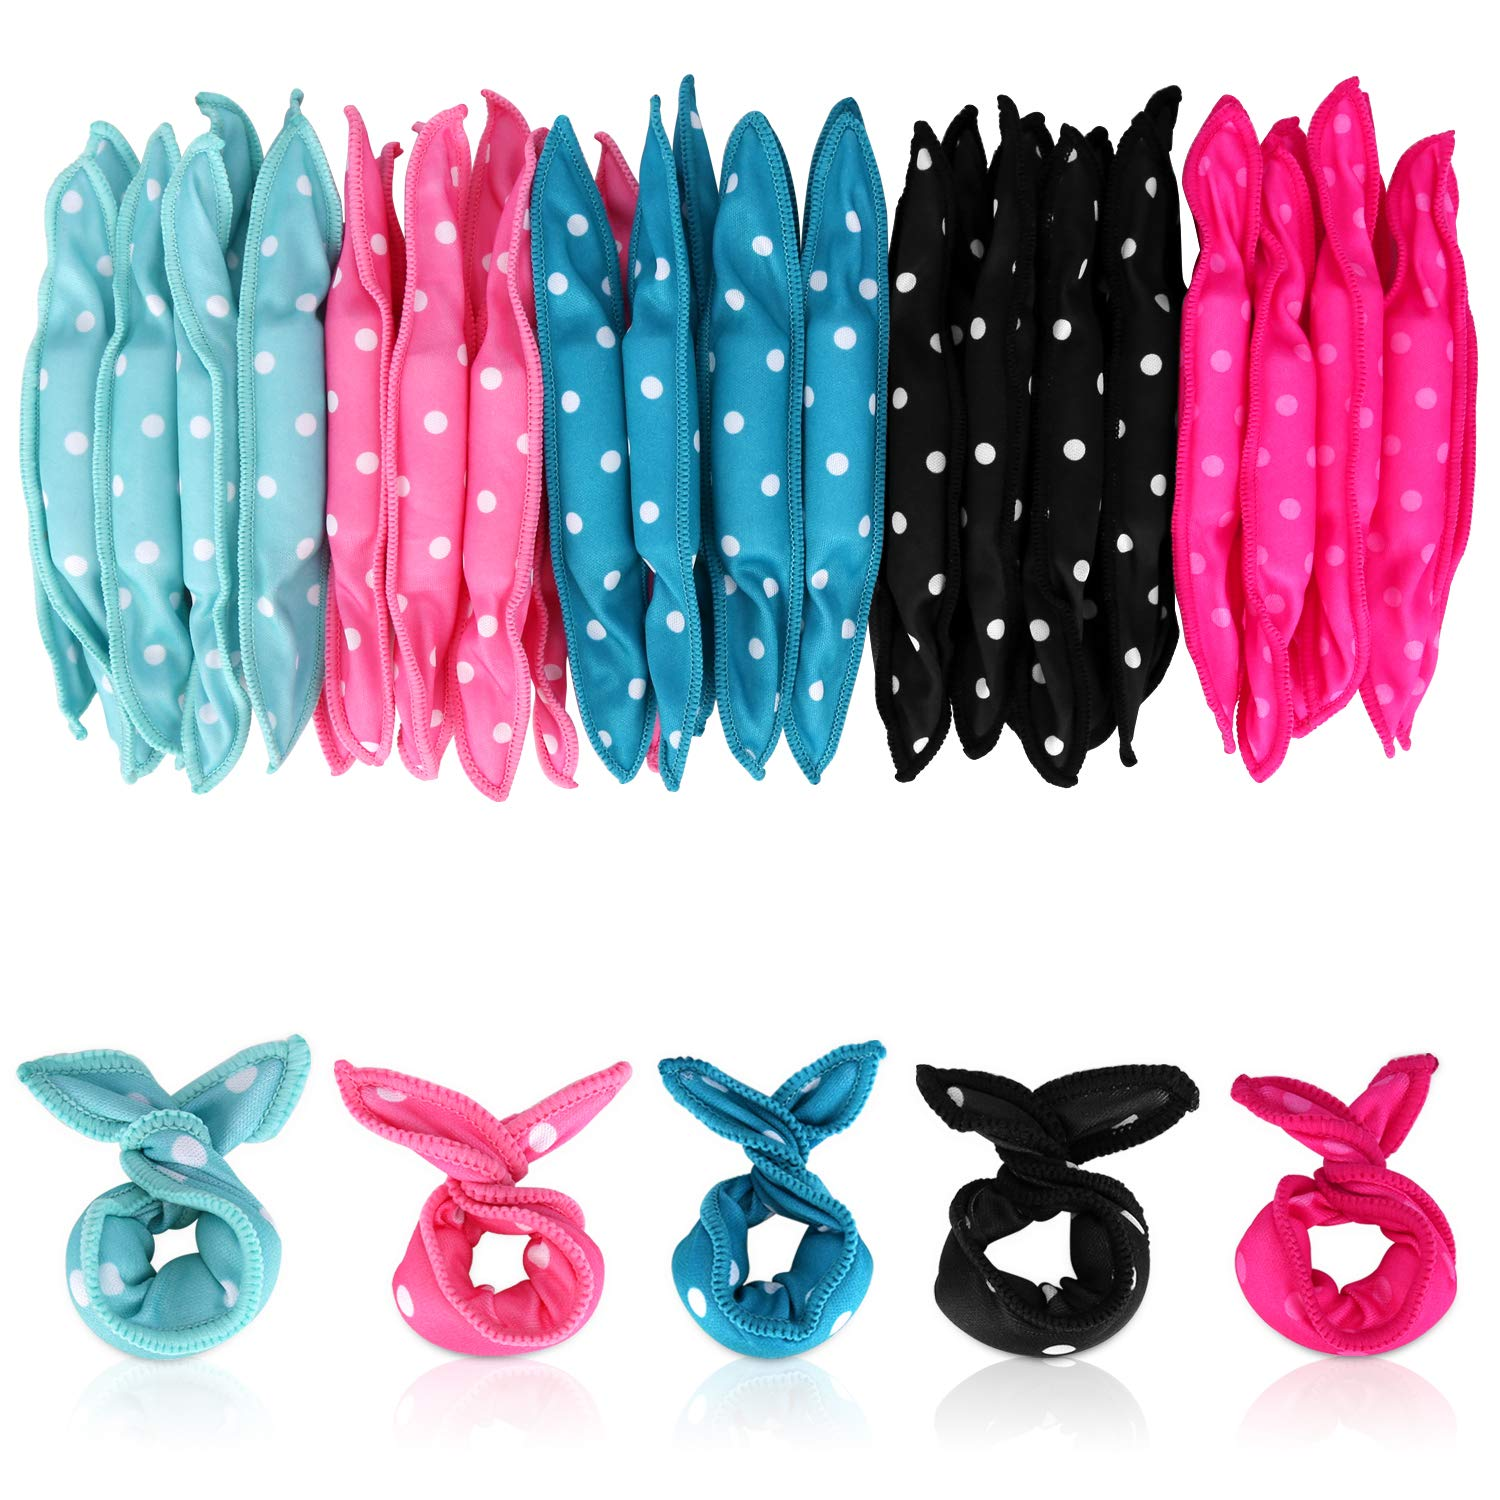 Locisne 40pcs Flexible Foam Sponge Hair Rollers, No Heat Hair Curlers Magic Pillow Soft Hair Rollers Spiral Curls Set Hair Care DIY Hair Styling Rollers Comfy to Sleep on (5 Colors) by Locisne